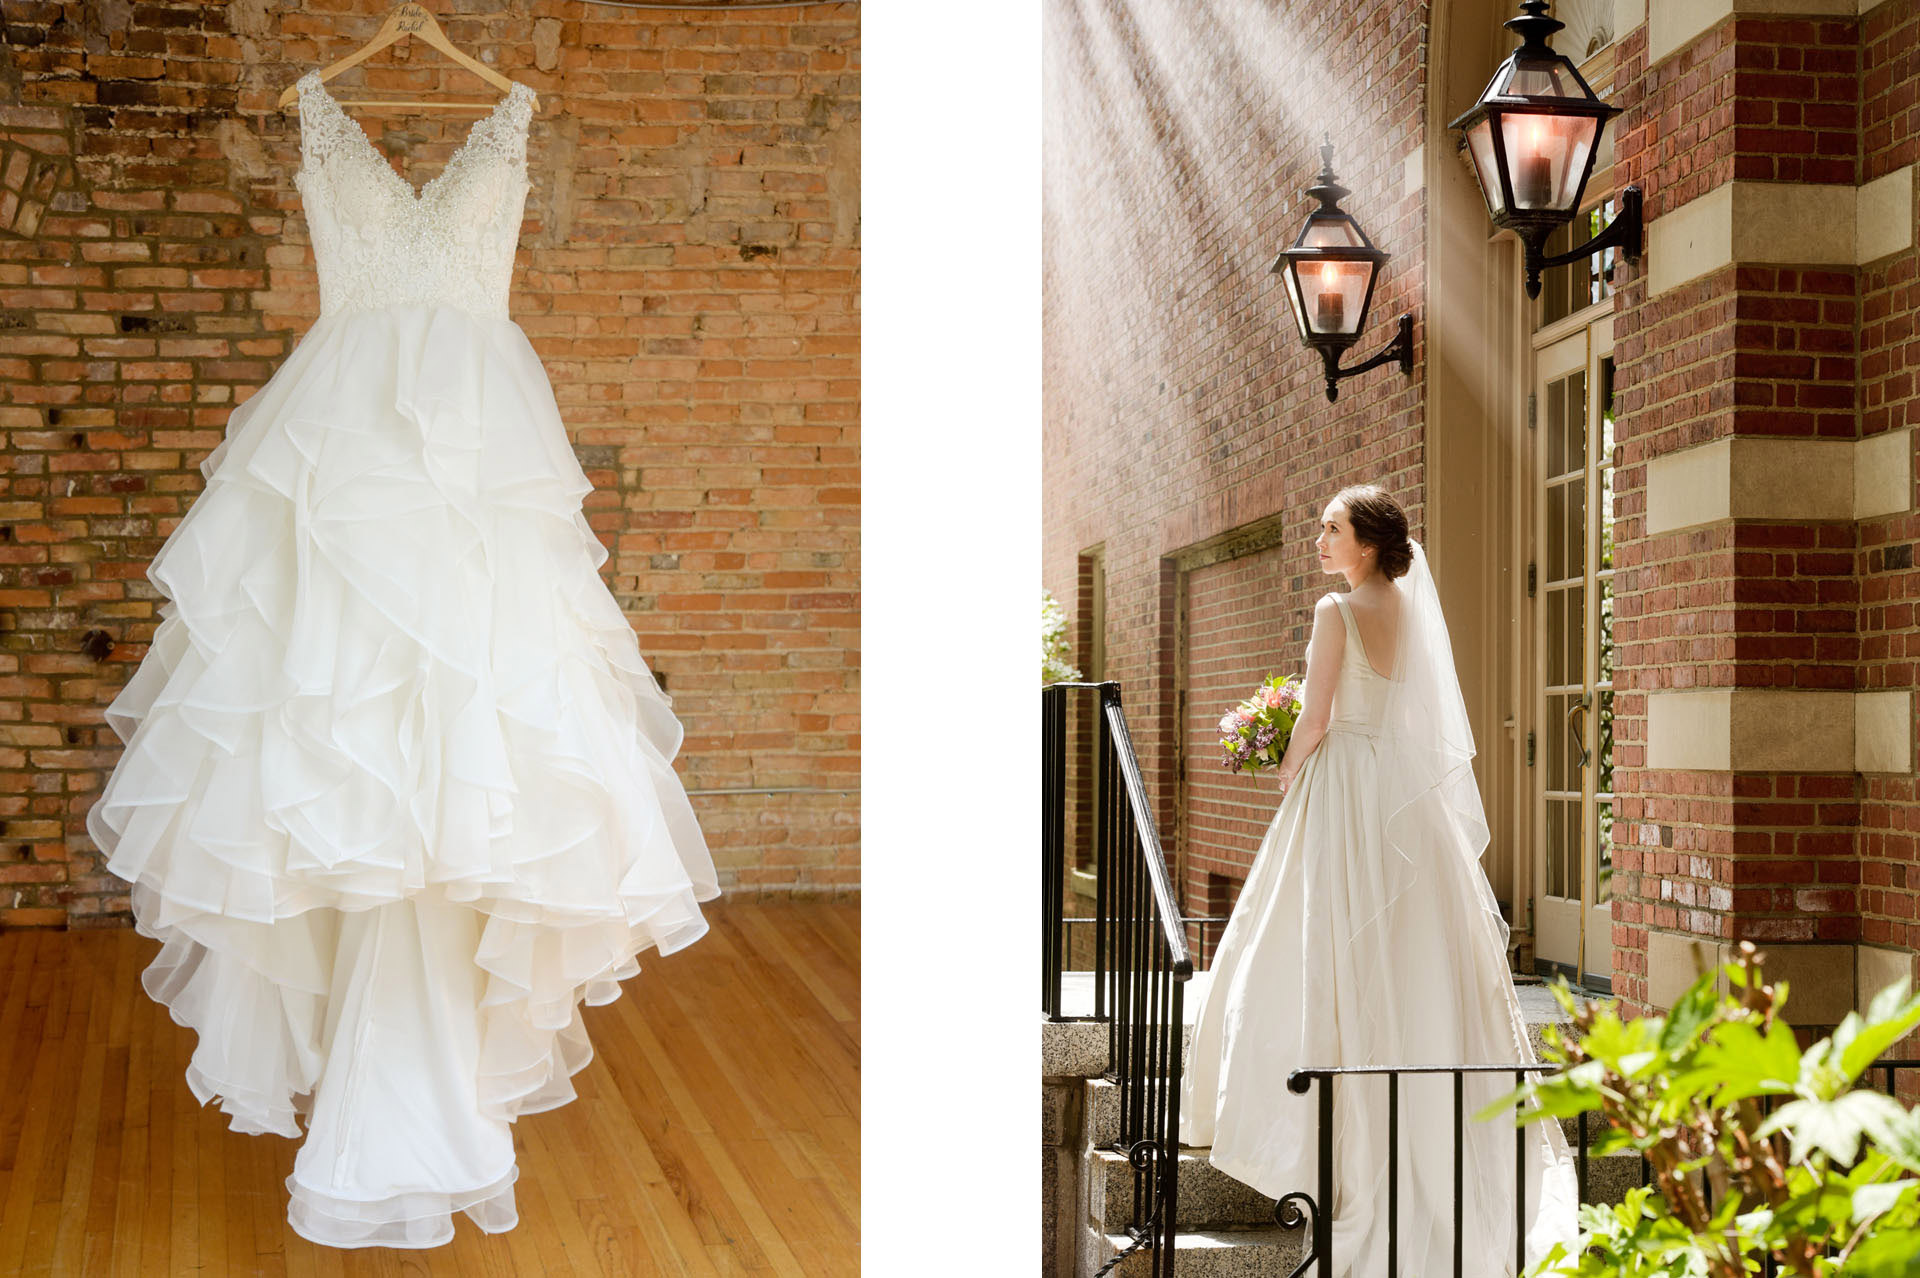 Creating wedding day art with the details like this wedding dress along with a beautifully lit bridal portrait taken at the historic Dearborn Inn in Dearborn, Michigan.